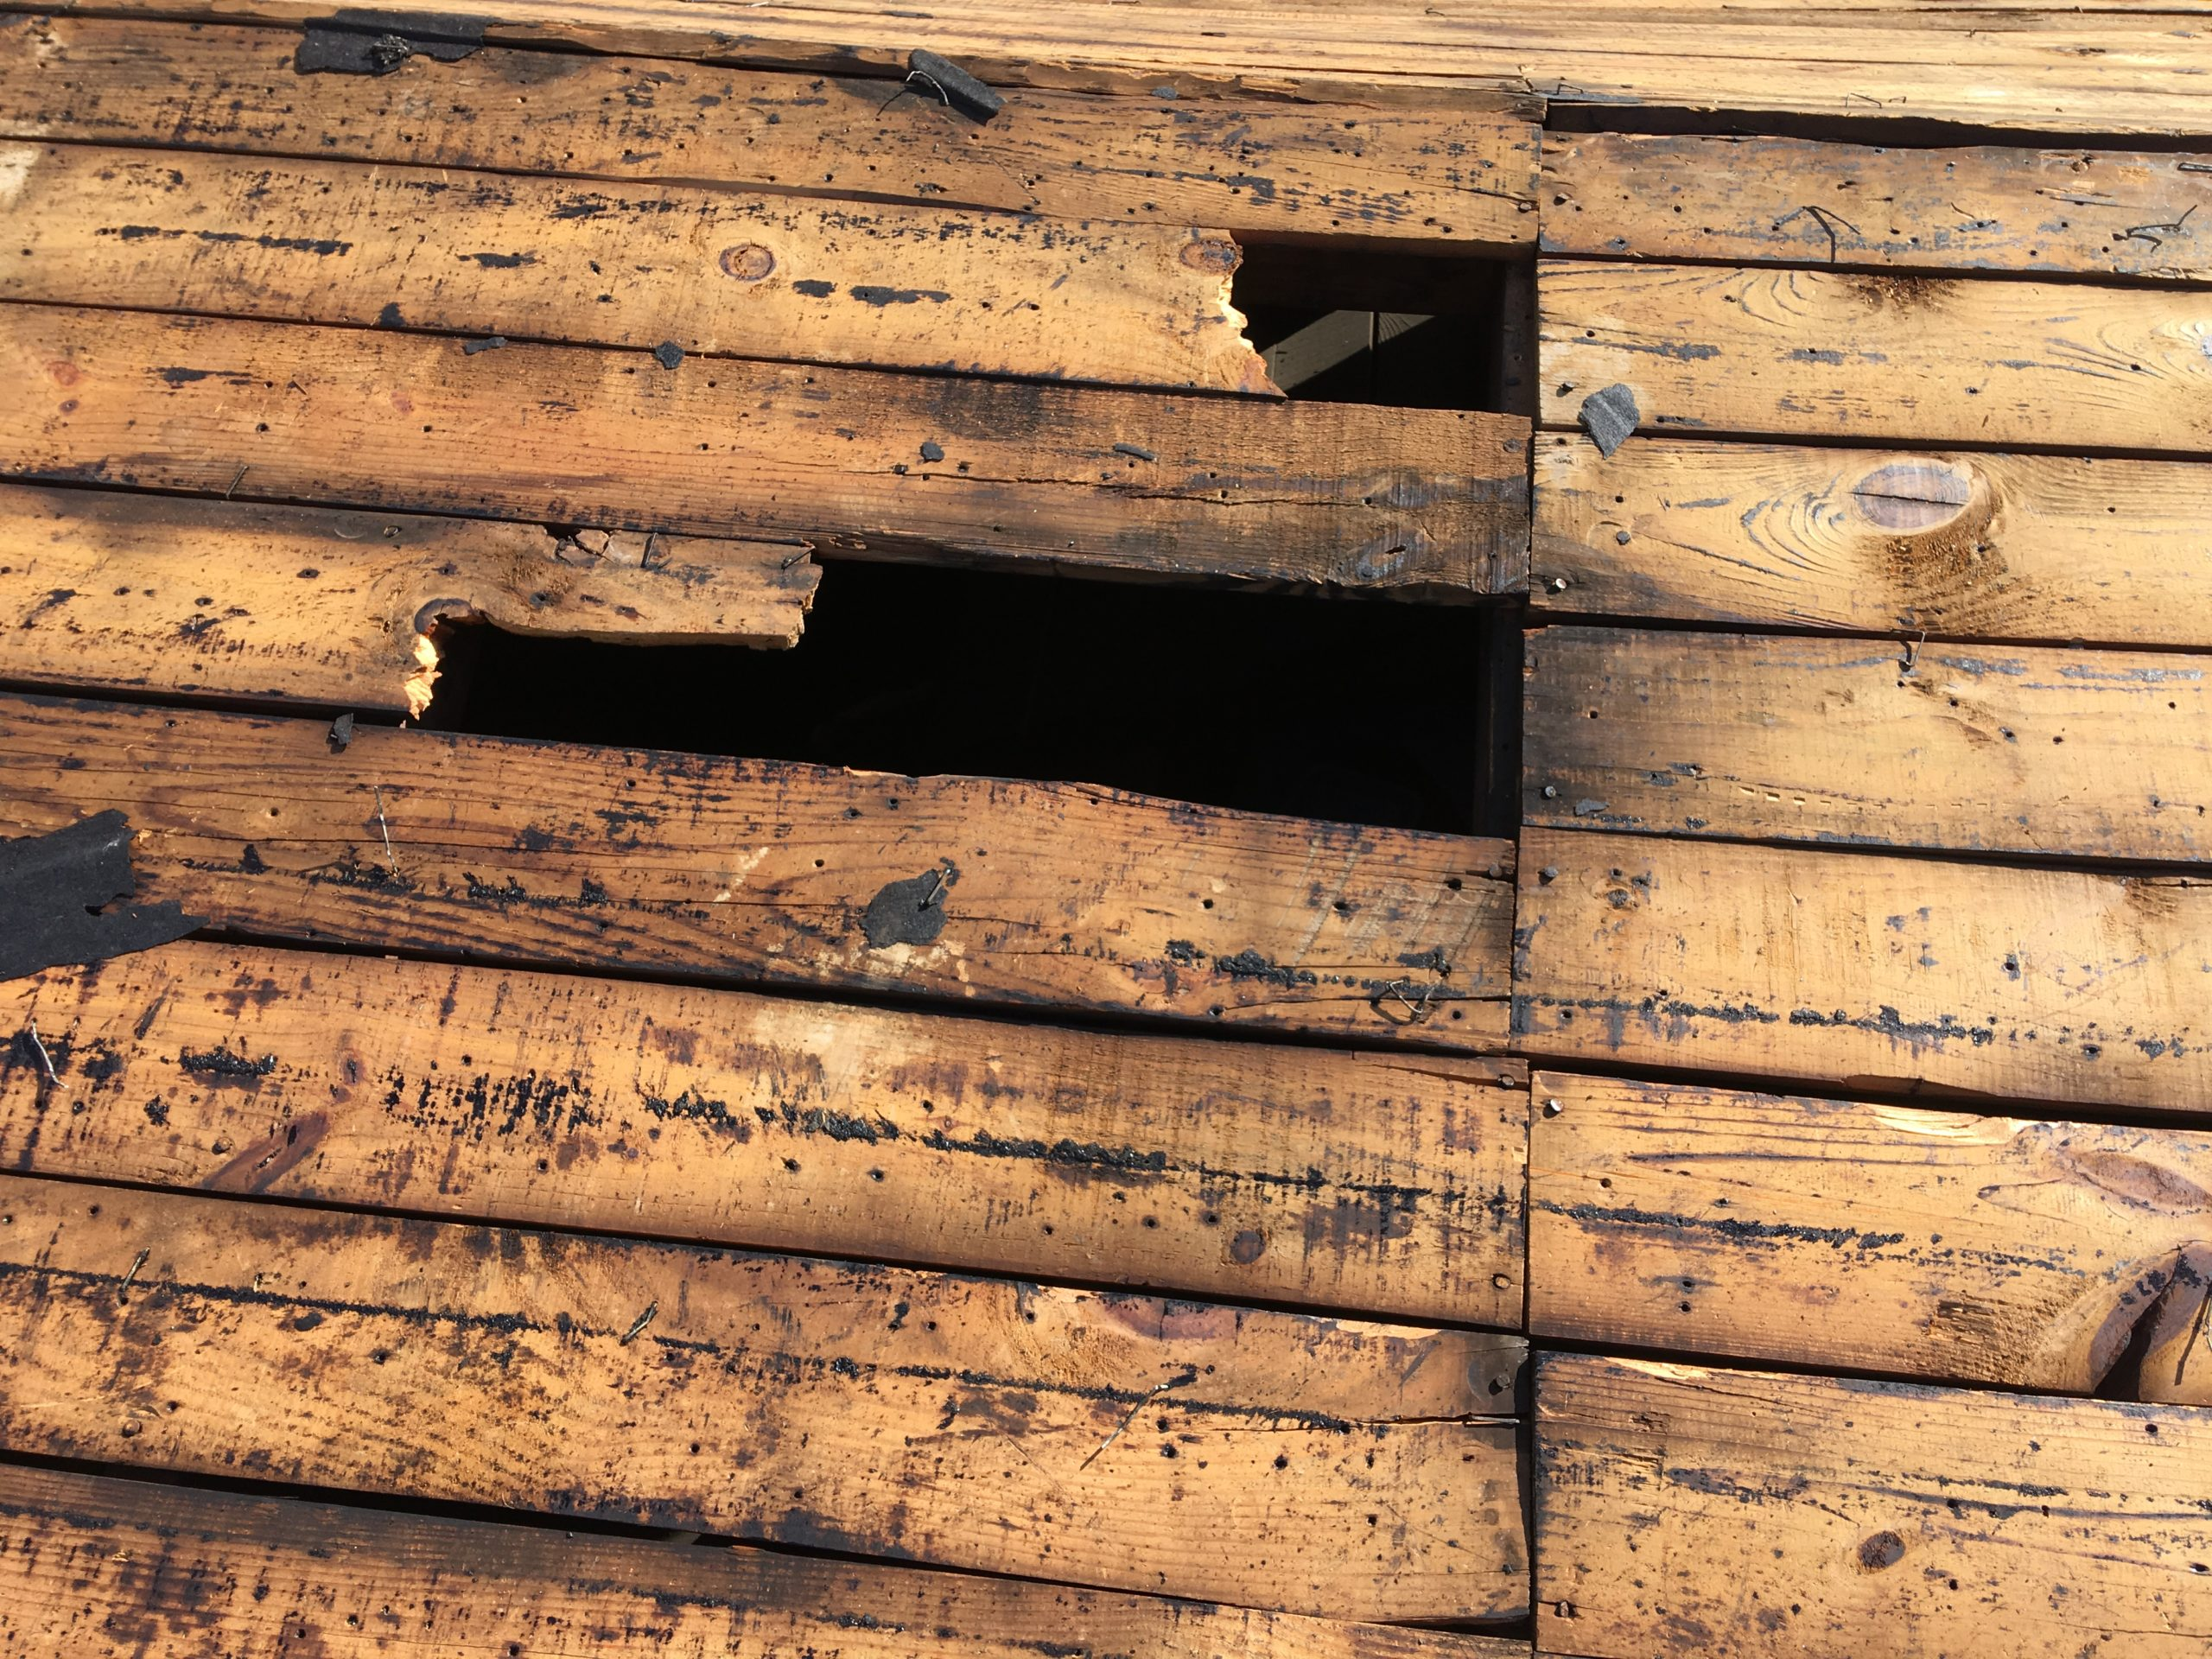 This is a view of missing deck boards on the roof.